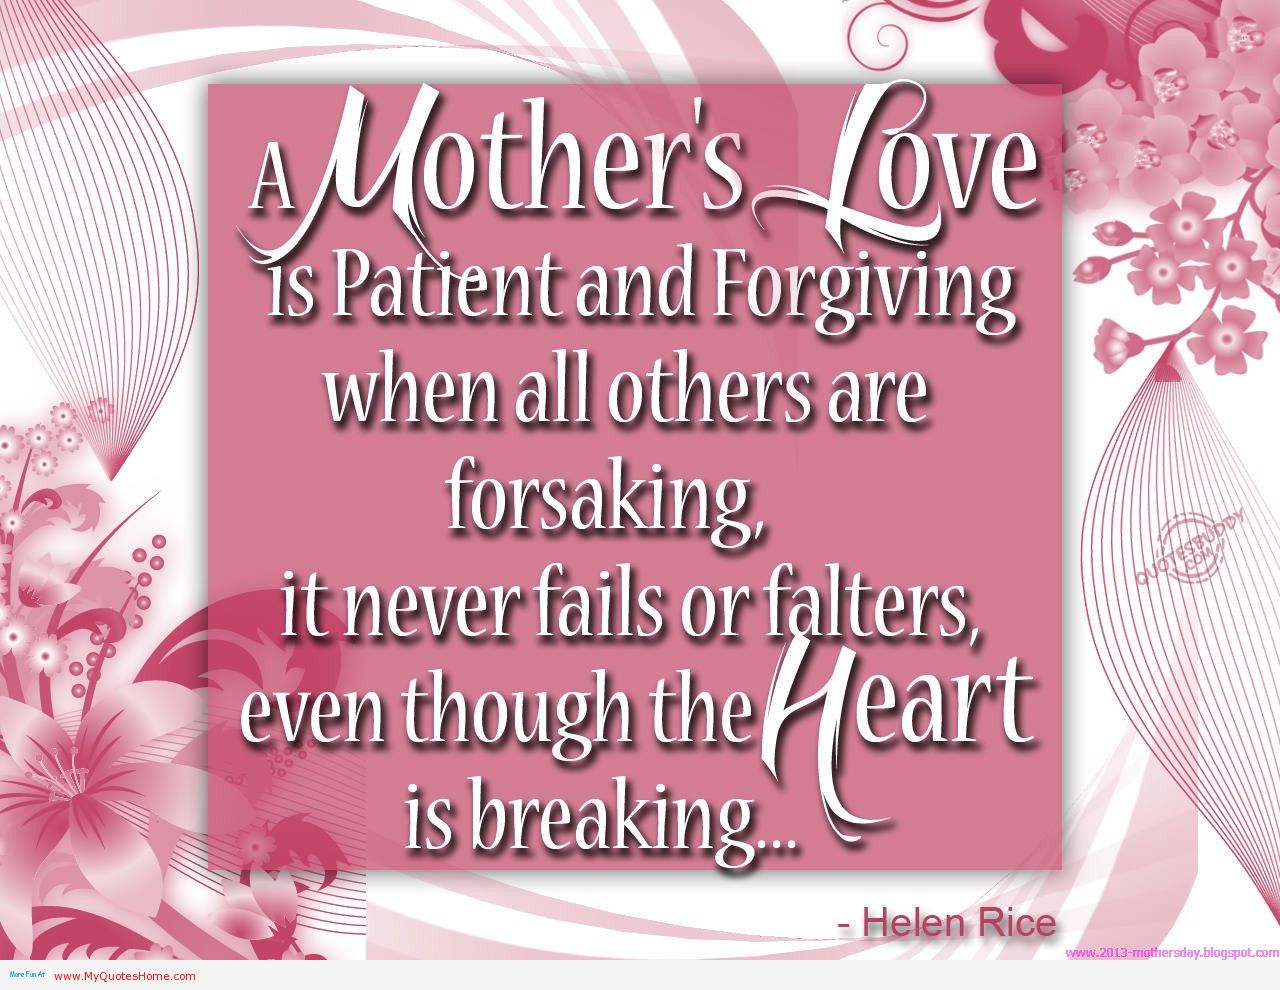 mothers-day-quotes-and-sayings-happy-mothers-day-quote-helen-rice-mothers-day-quotes-32533